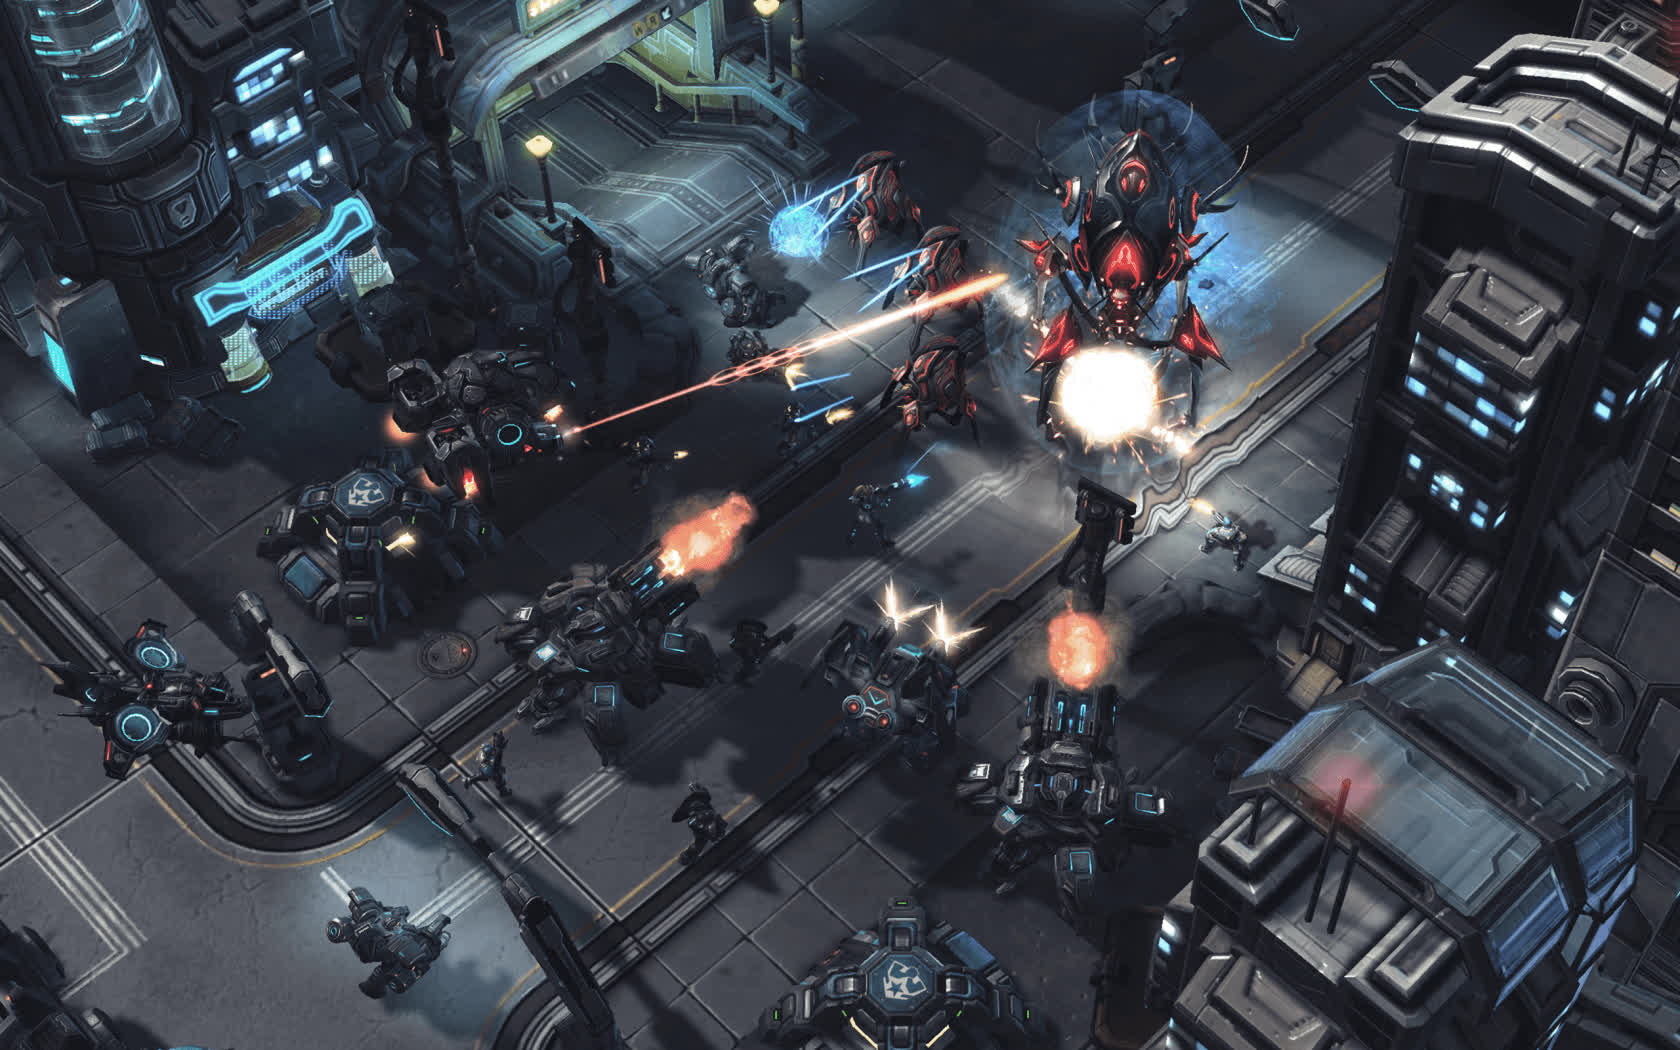 Blizzard ceases major content updates for StarCraft II after over a decade